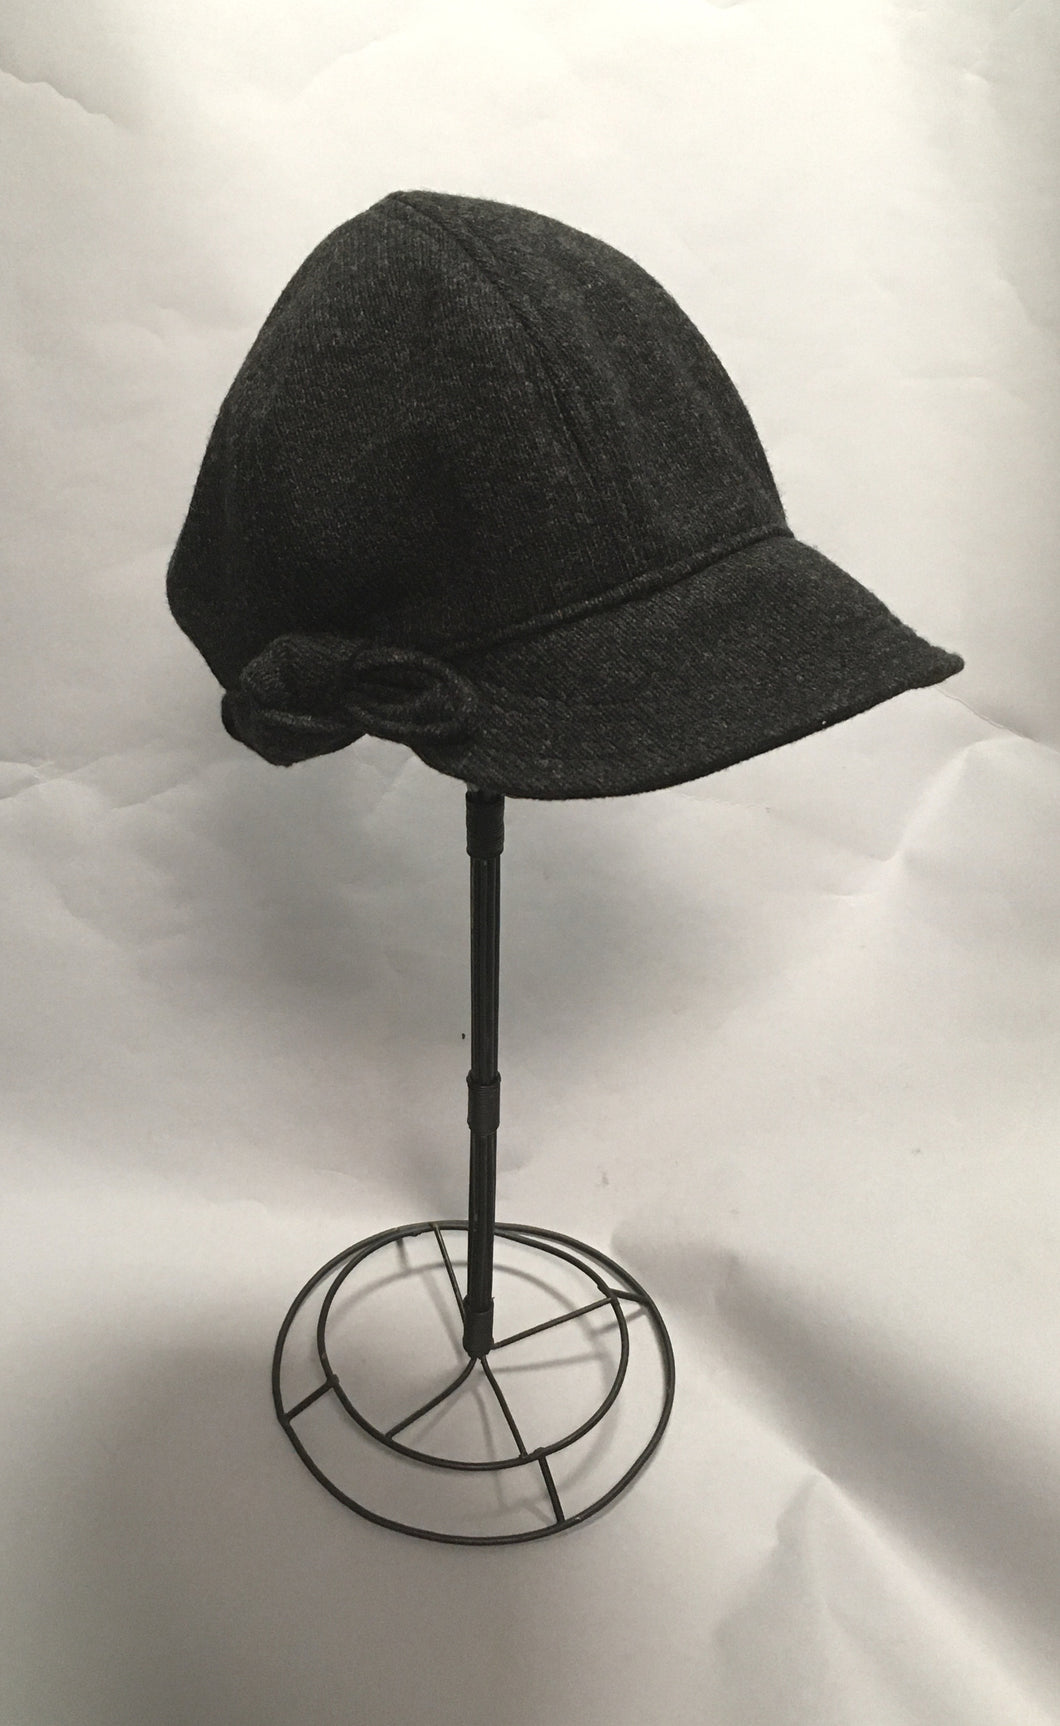 *Charcoal Wool Cap $50 (MRC 1017A)